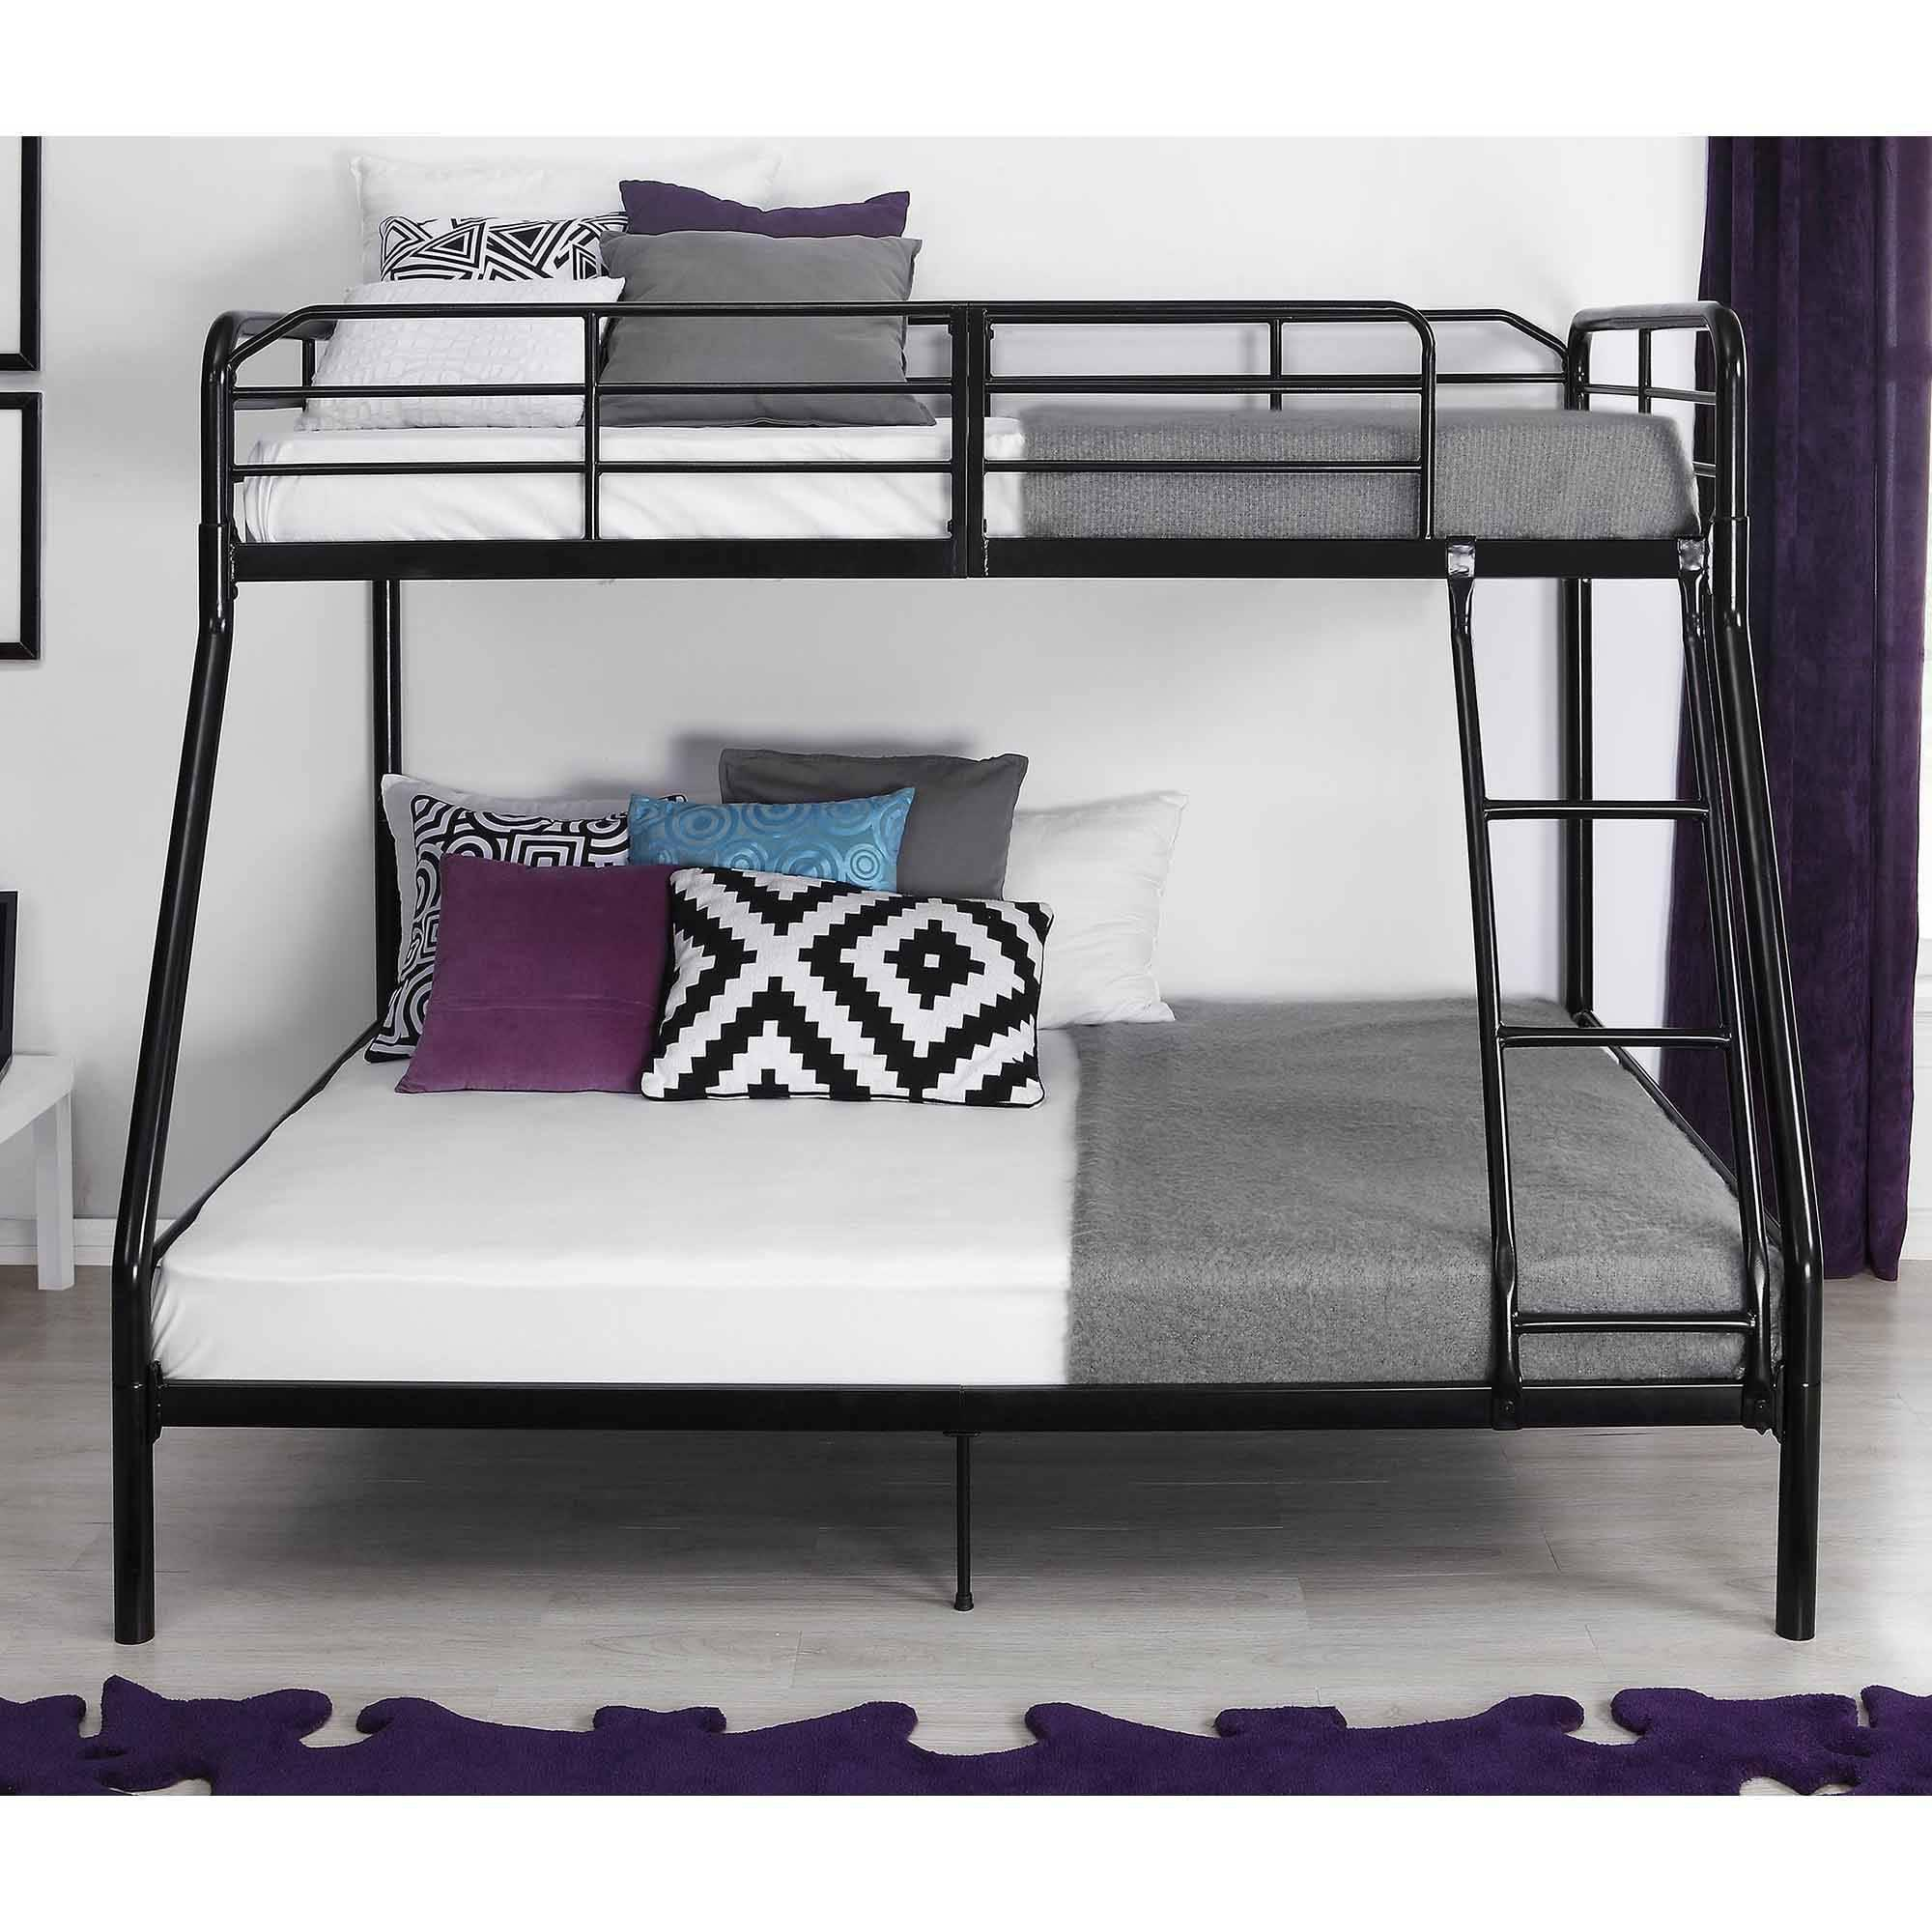 twin over full metal bunk bed w ladder kids bedroom furniture dorm loft ebay. Black Bedroom Furniture Sets. Home Design Ideas